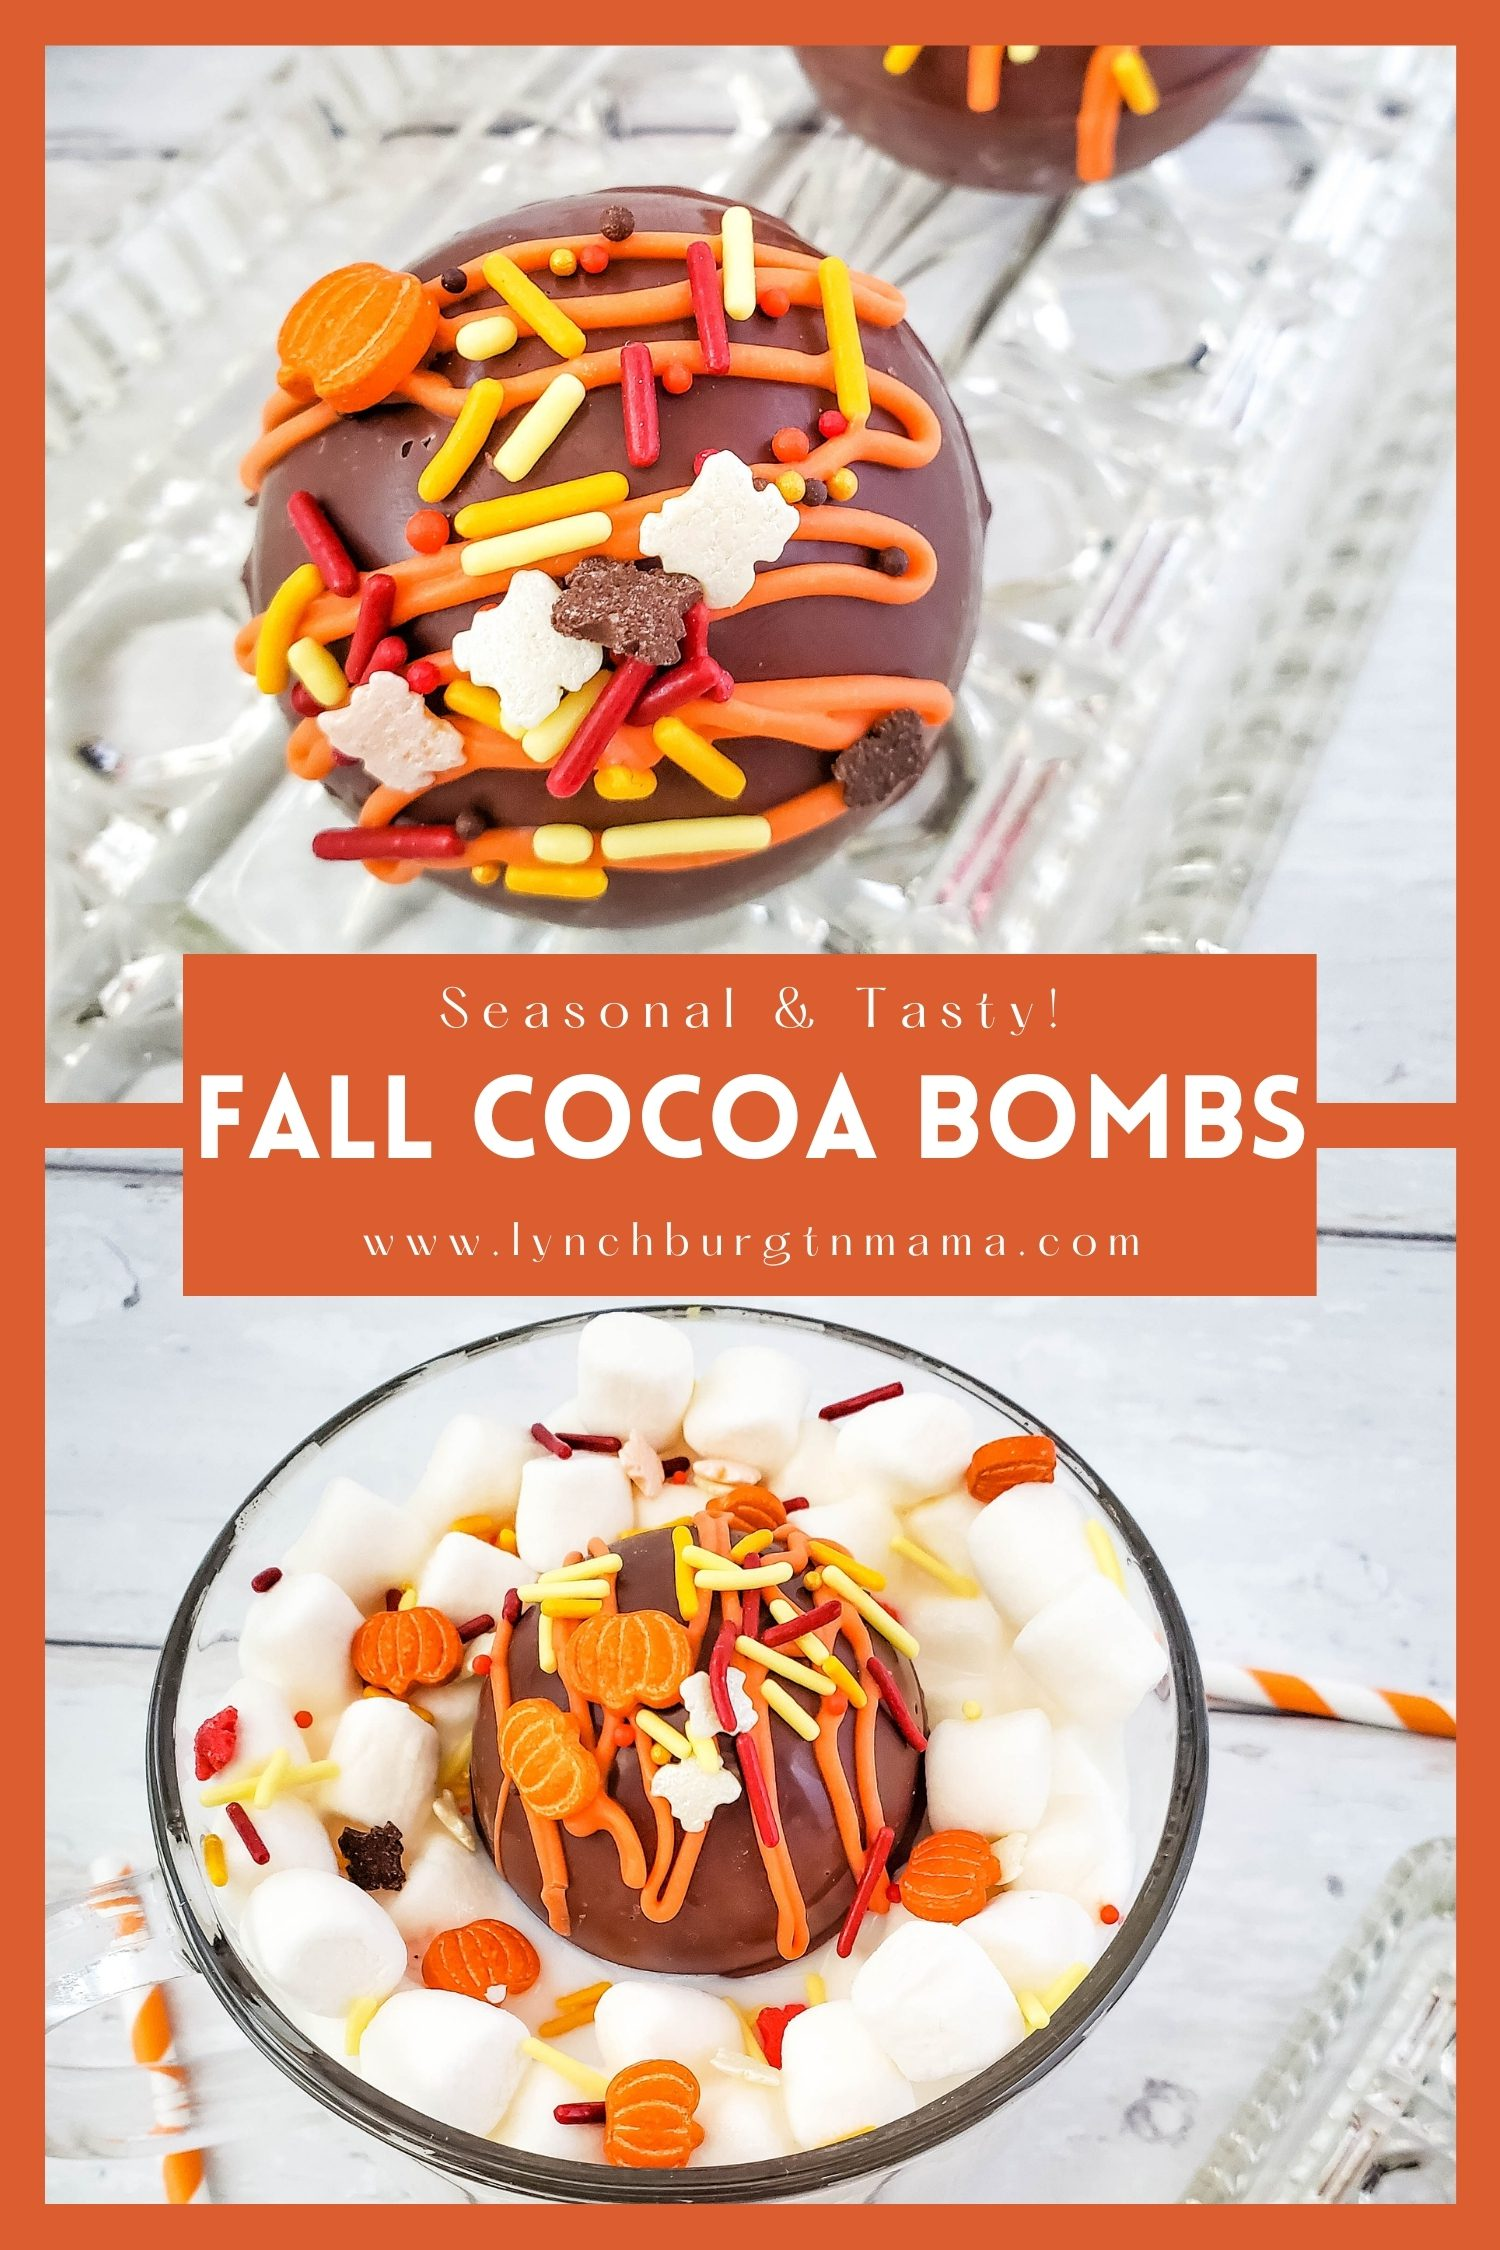 Fall Cocoa Bombs are exactly what a cup of warm milk needs to sit and enjoy the leaves falling, a night by the fireplace, while enjoying Hallmark movies, and well, anytime this season. Learn how easy it is to make hot cocoa bombs!